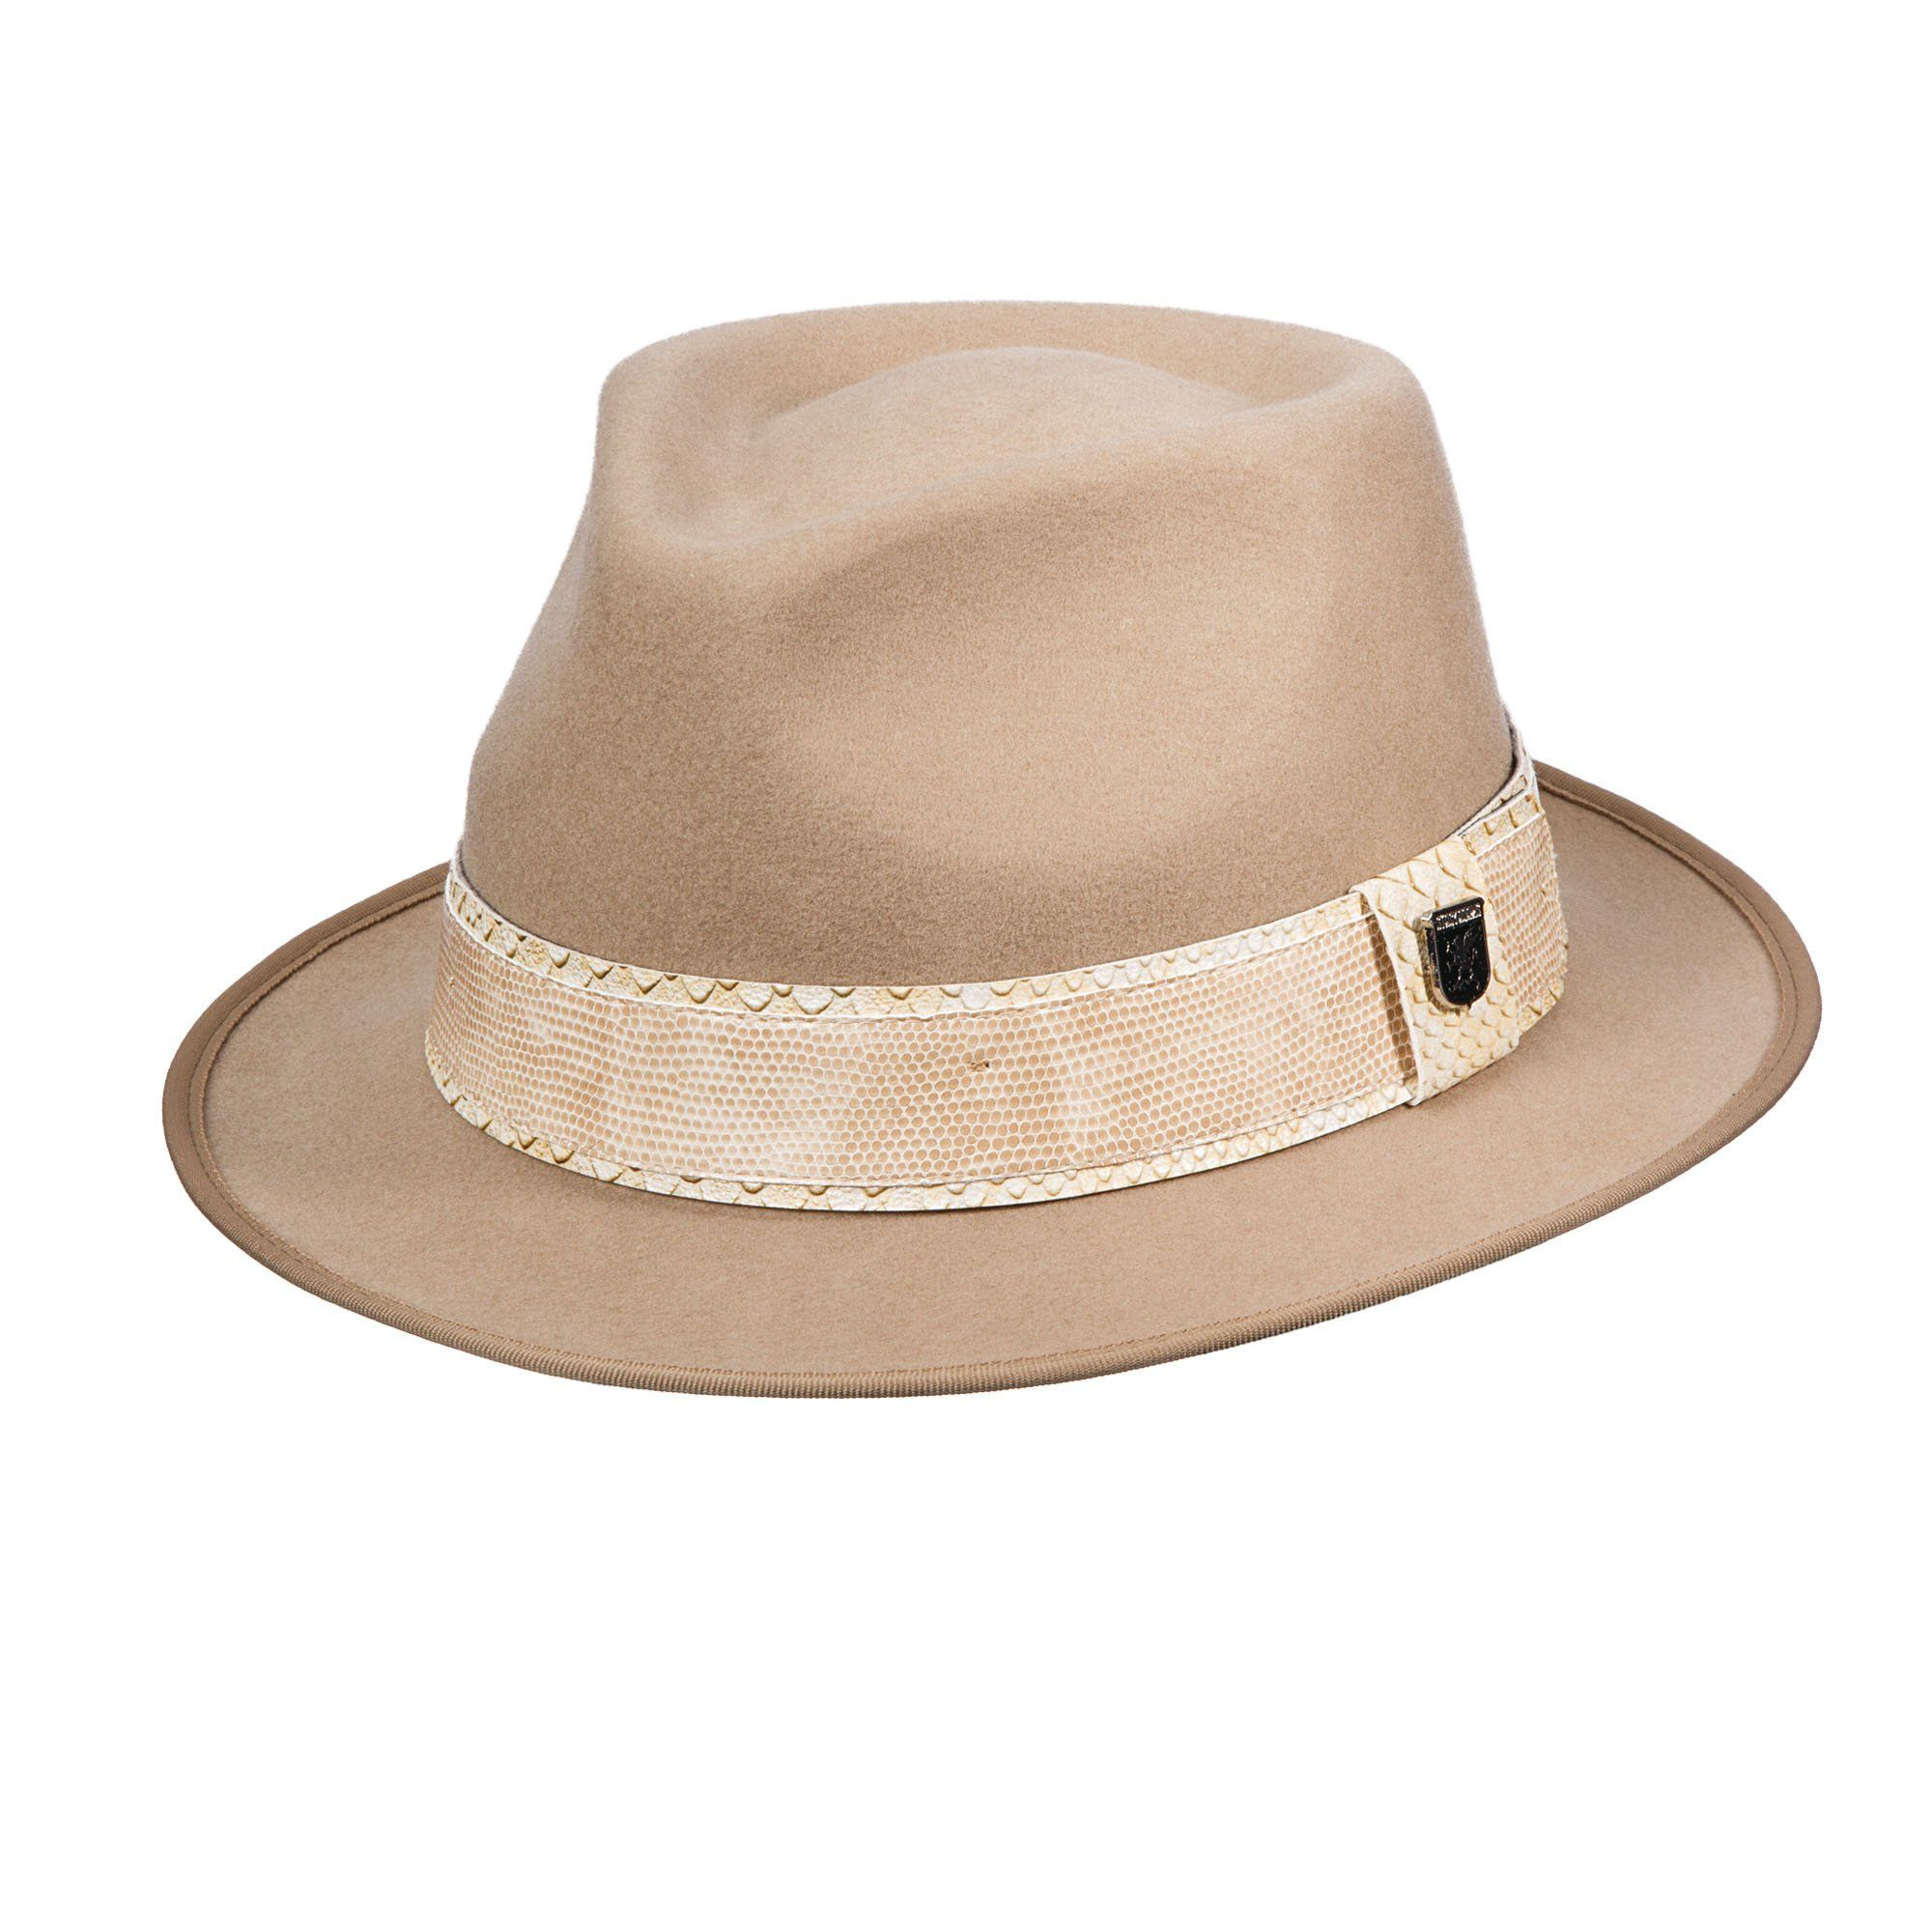 8dcdaac7f7171 Lower pitch crushable wool felt hat. 2 1 8